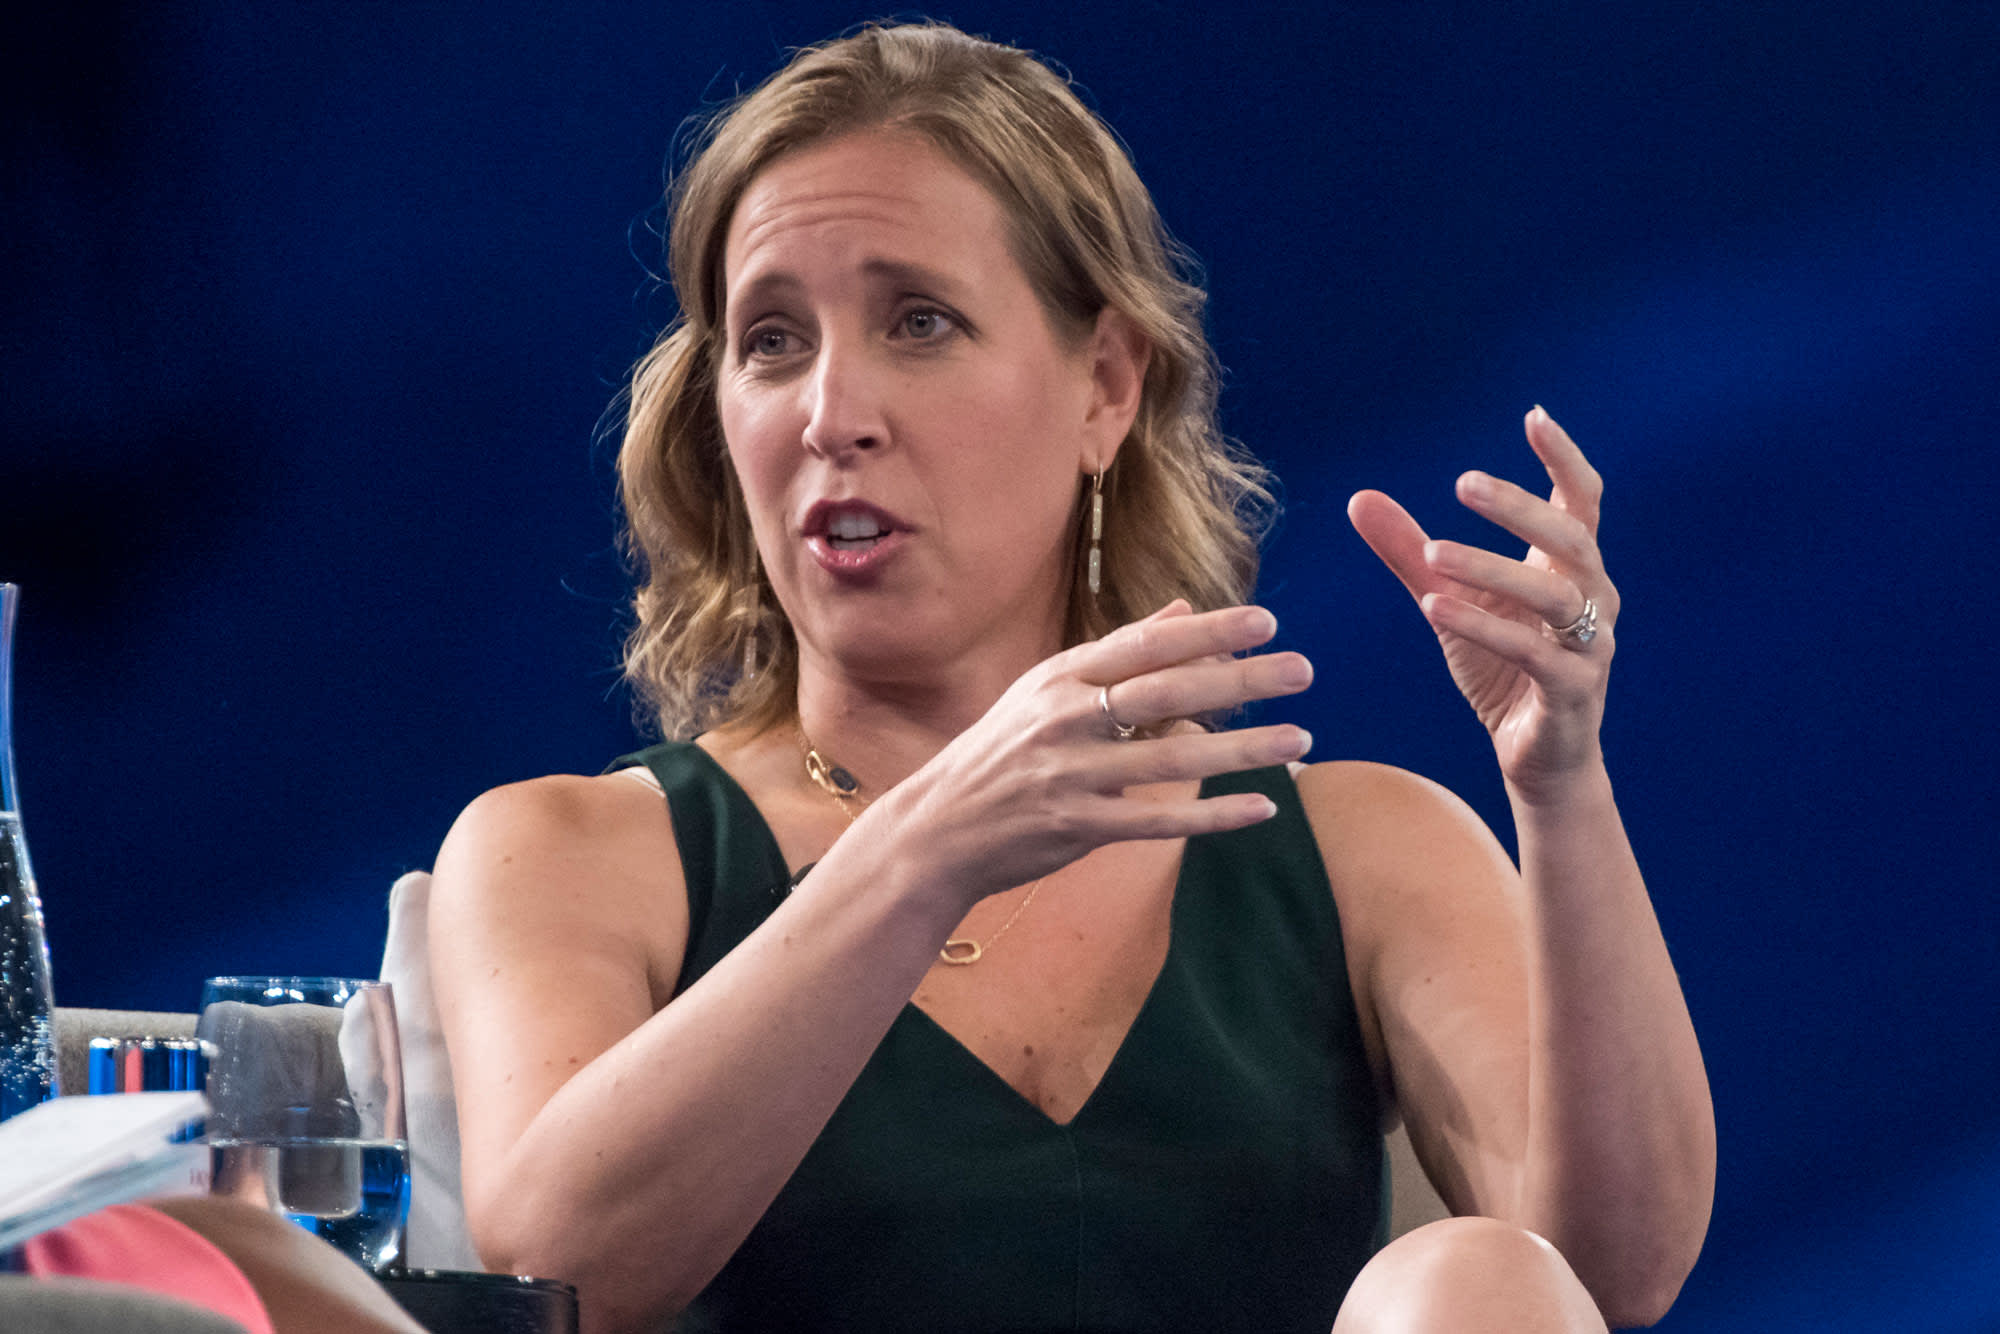 YouTube adds liaison to help it communicate with creators - CNBC